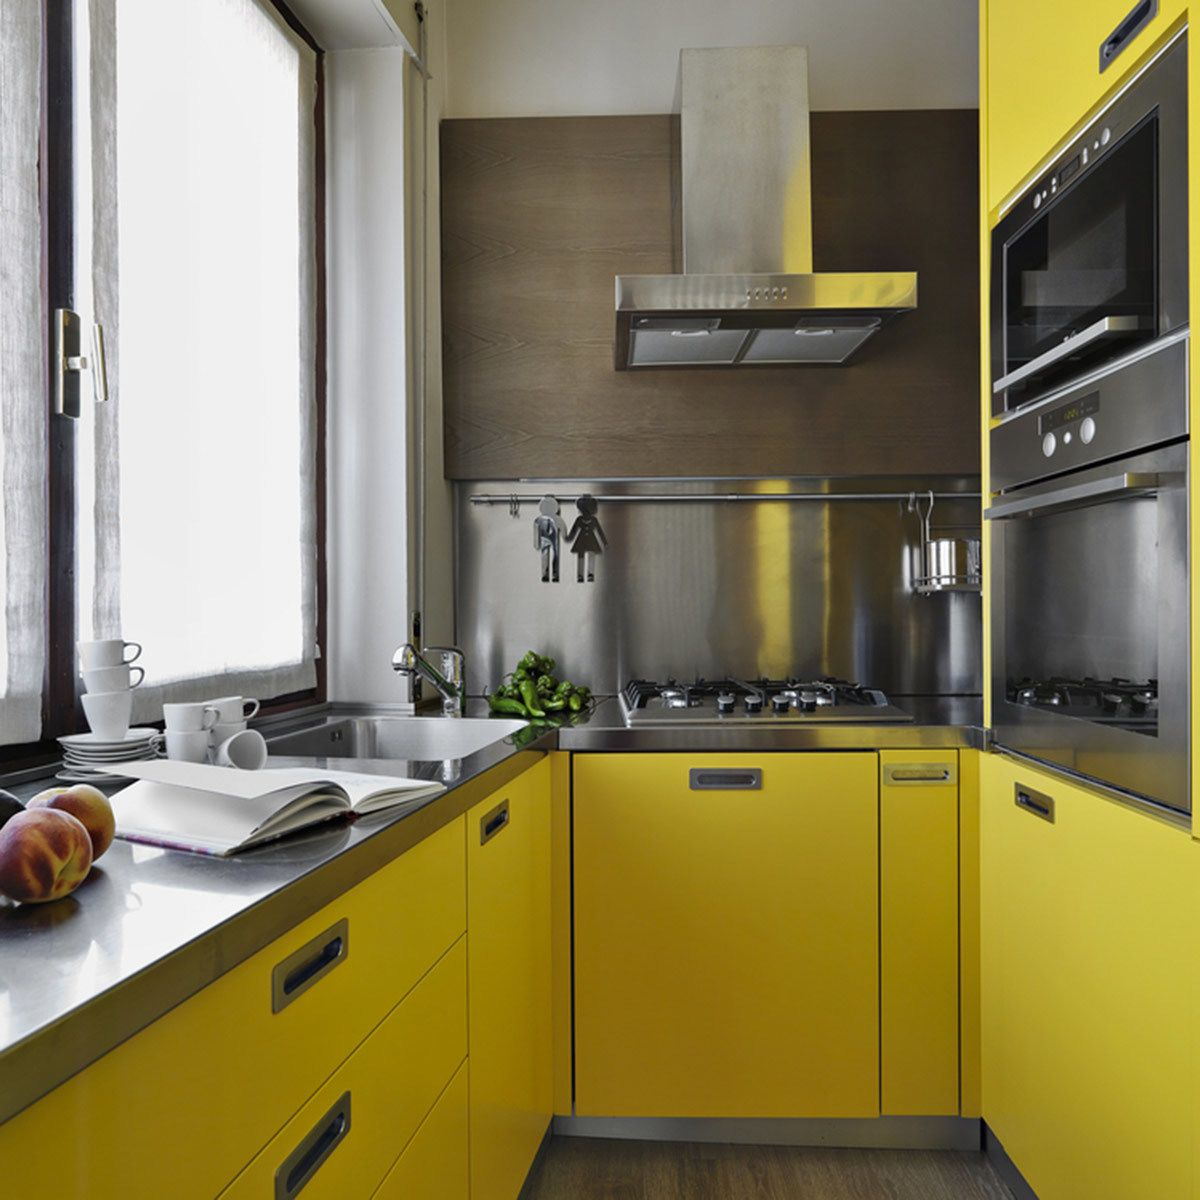 Trending Kitchen Cabinet Colors | Diy kitchen cabinets ...